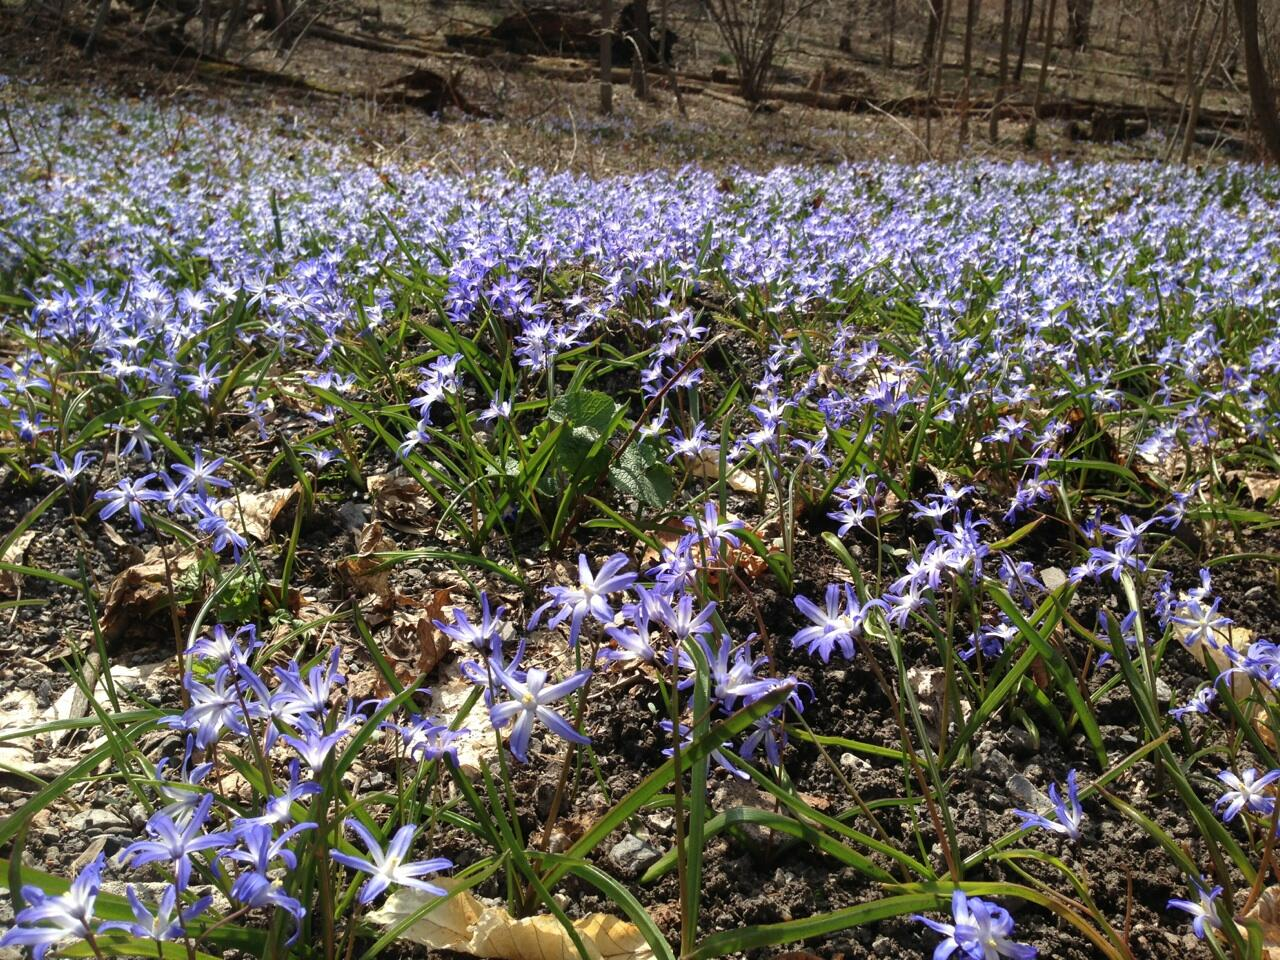 Blue violet beauties cover the grounds at CoSM http://t.co/8ZCzkMprzk